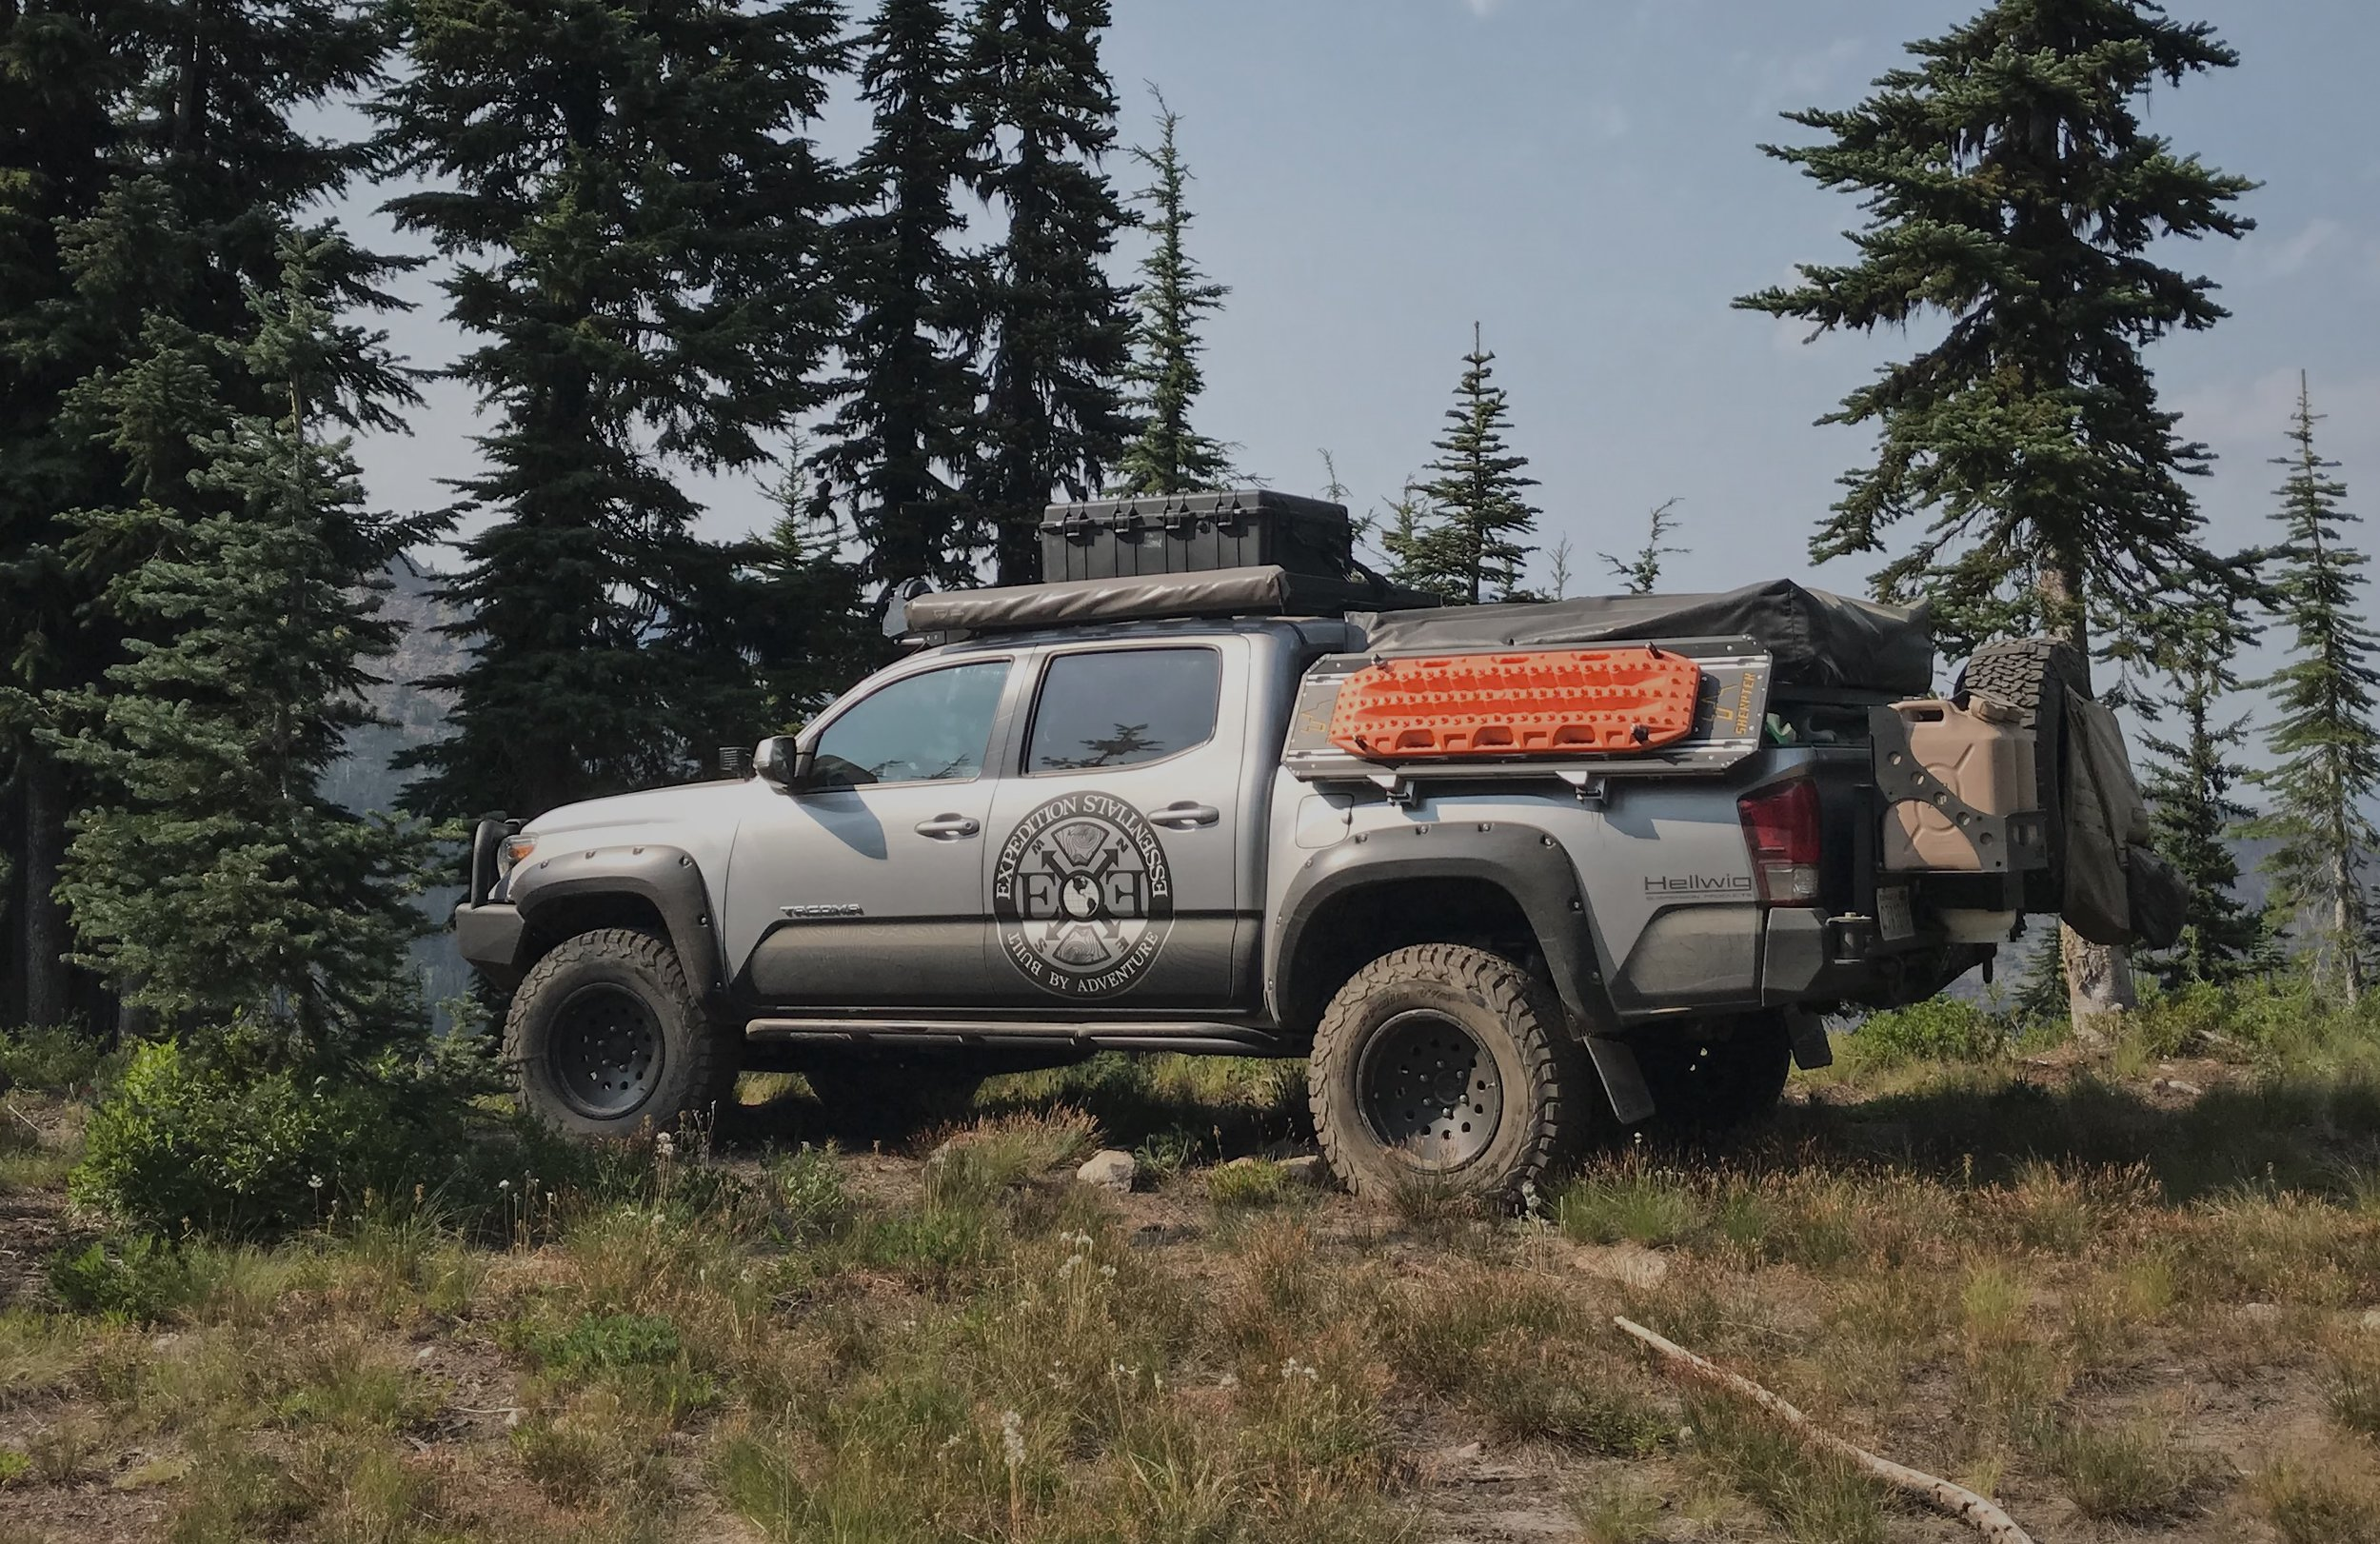 Ultimate gear-hauling solution that mounts to any ladder, rack system and hard surface, including your spare tire, and can carry up to 1,000 pounds of gear and supplies - on Toyota Tacoma